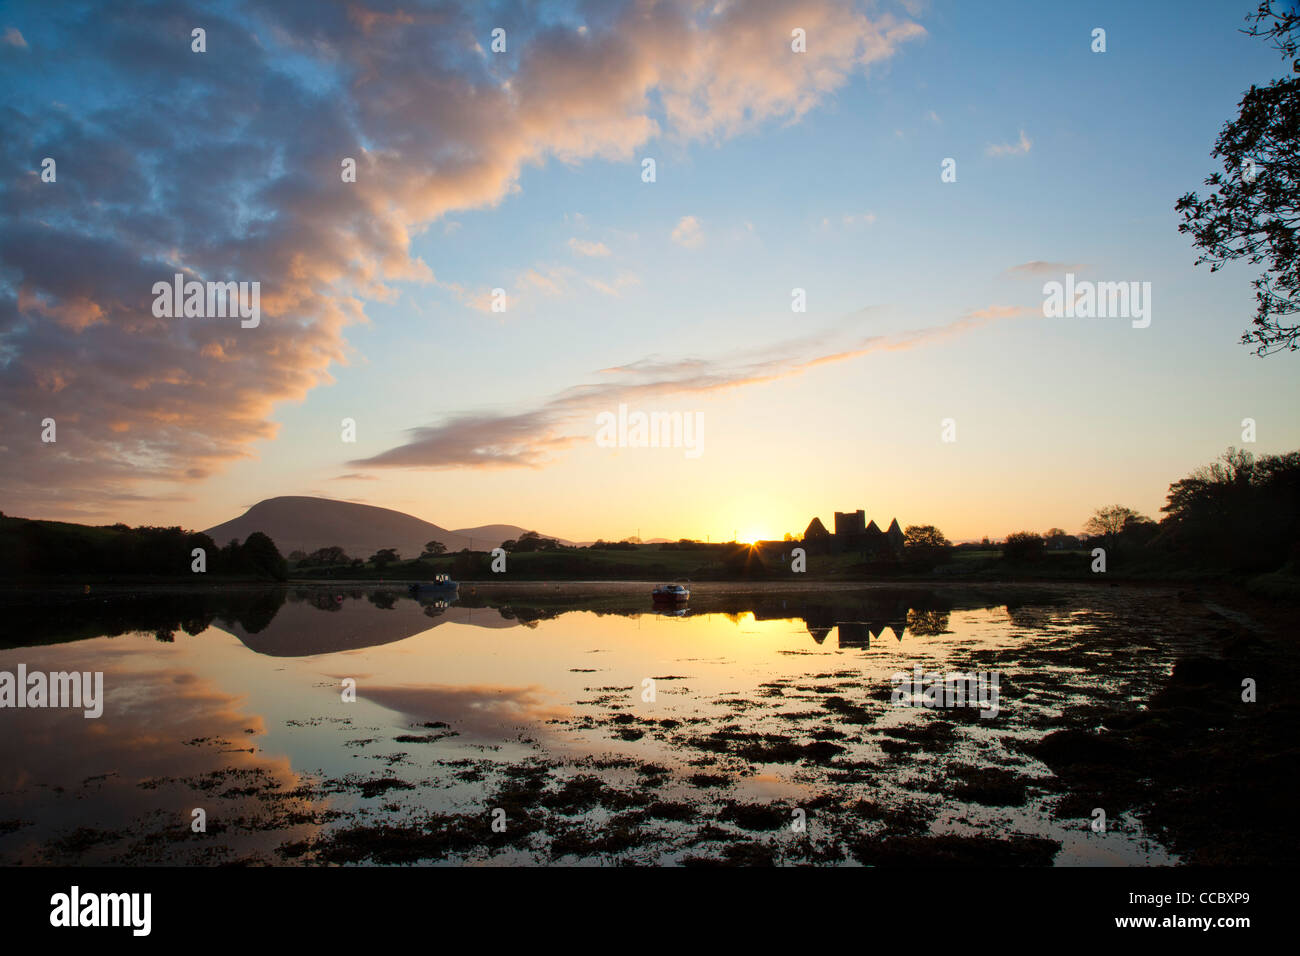 Sunset over Burrishoole Abbey, on the shore of Clew Bay, County Mayo, Ireland. - Stock Image